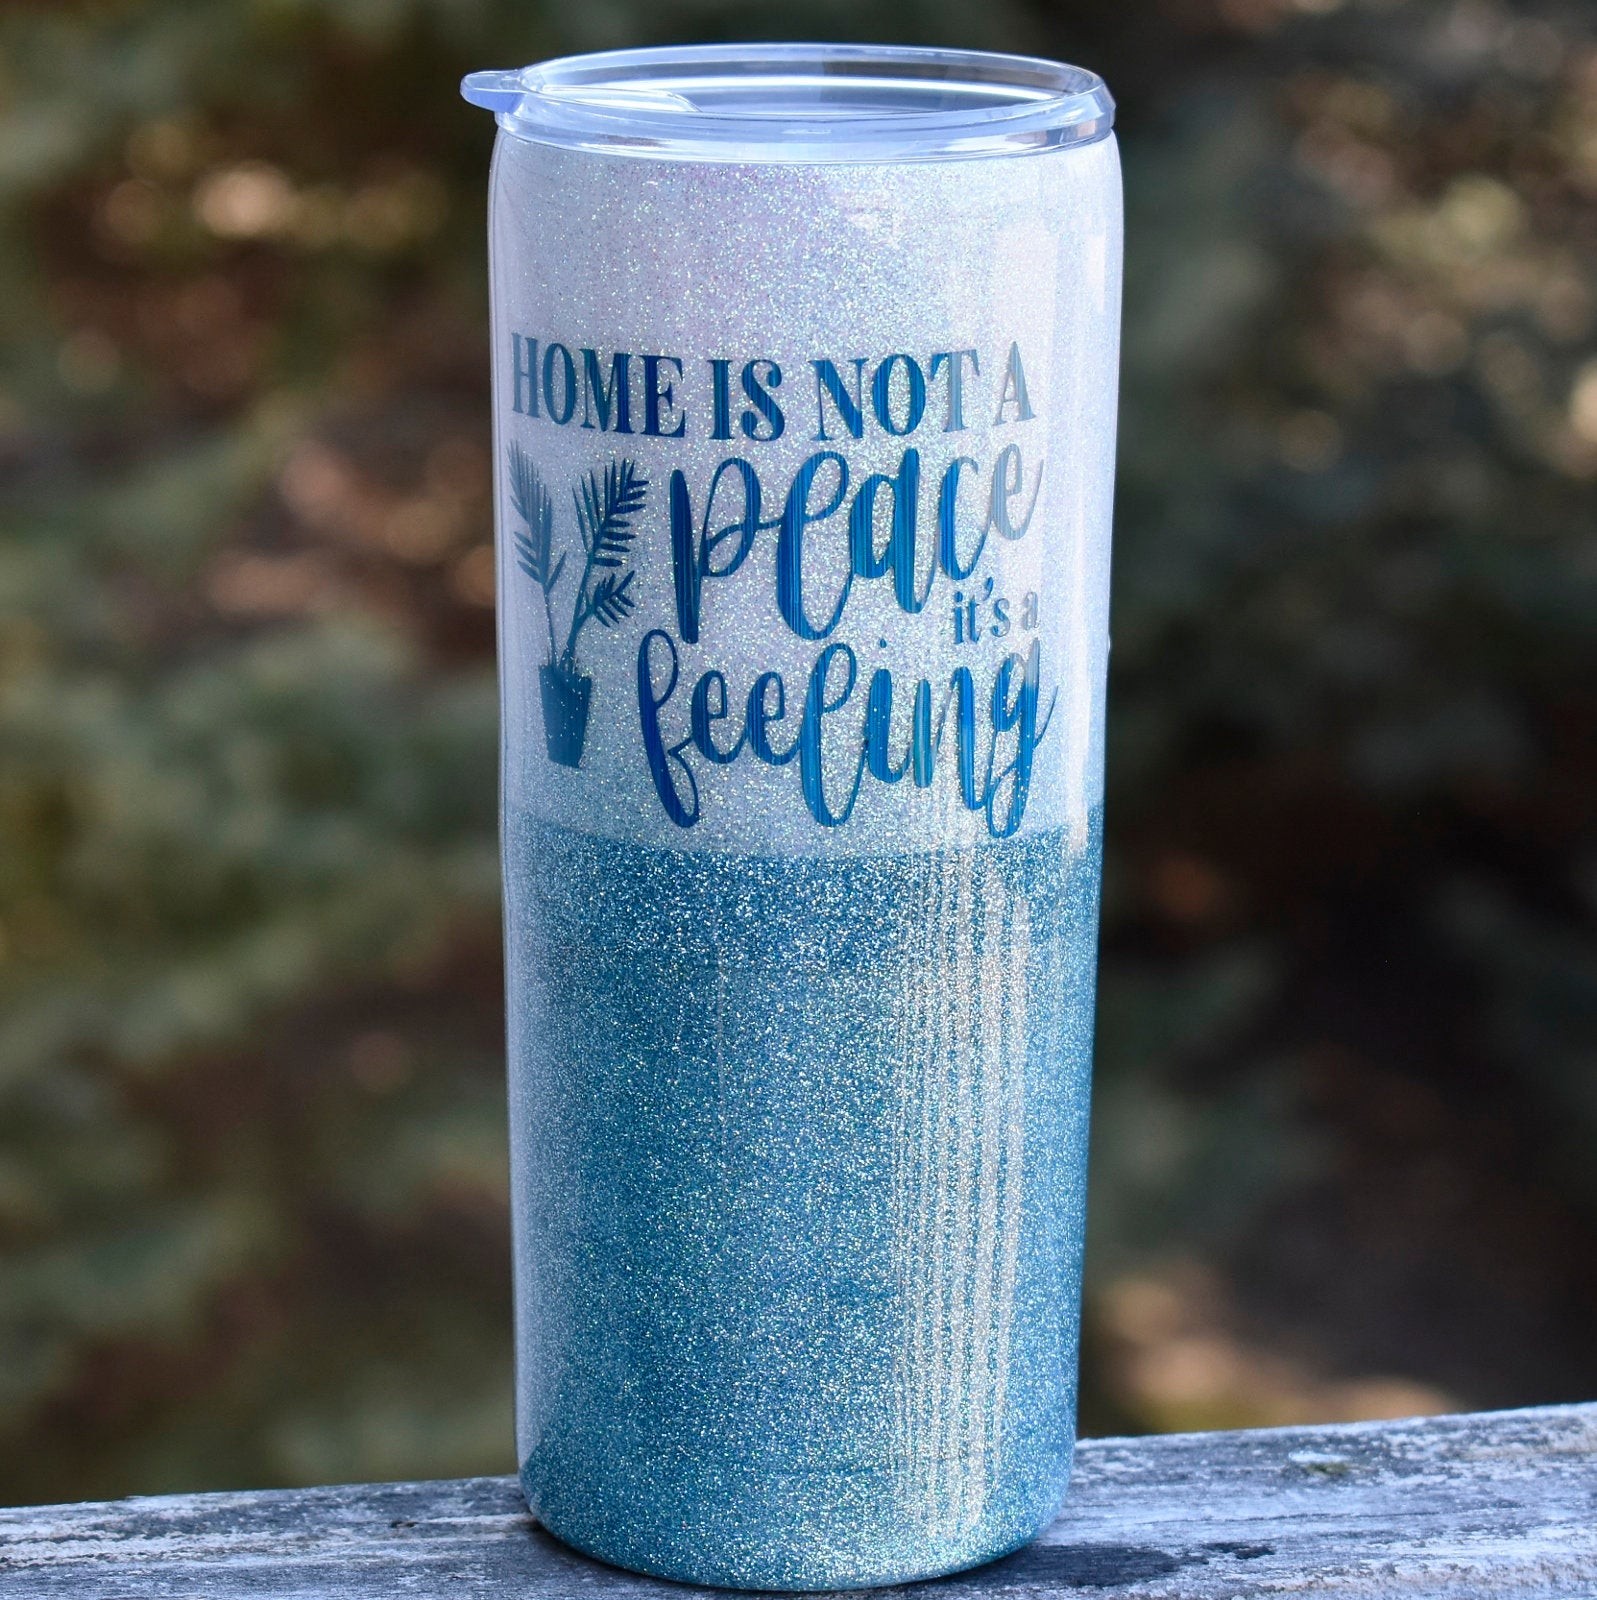 RTS White and Teal 20 oz Glitter Tumbler | Home is not a place its a Feeling | Glitter Tumbler | Housewarming Gift | Realtor Gift |